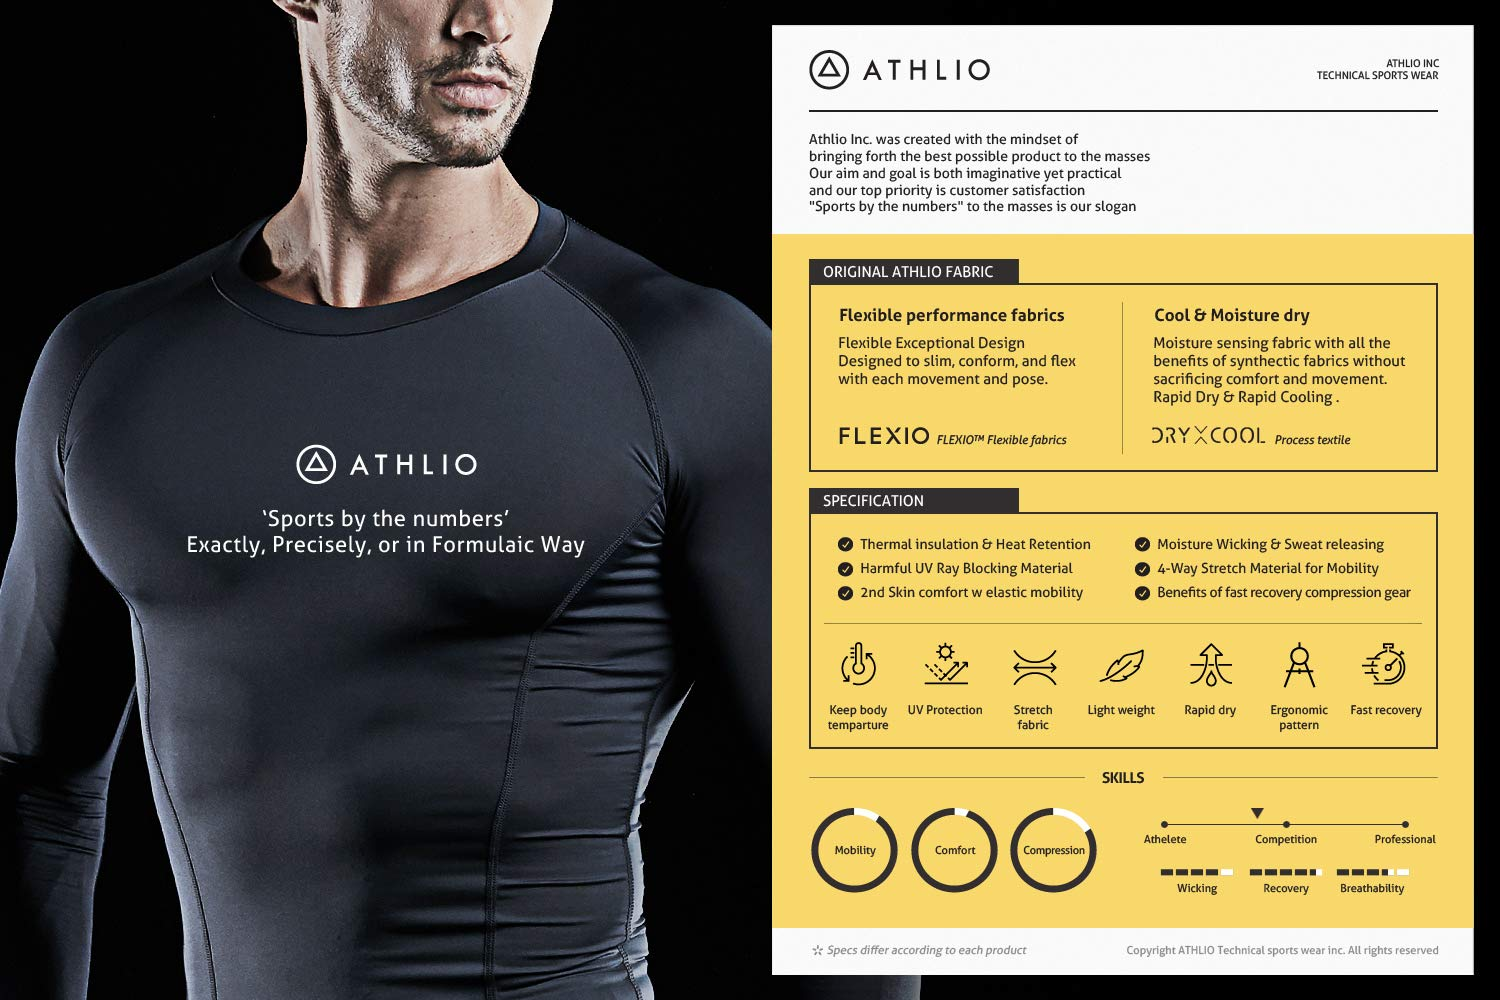 ATHLIO AO-BLS01-WHT_Large Men's (Pack of 3) Cool Dry Compression Long Sleeve Baselayer Athletic Sports T-Shirts Tops BLS01 by ATHLIO (Image #3)